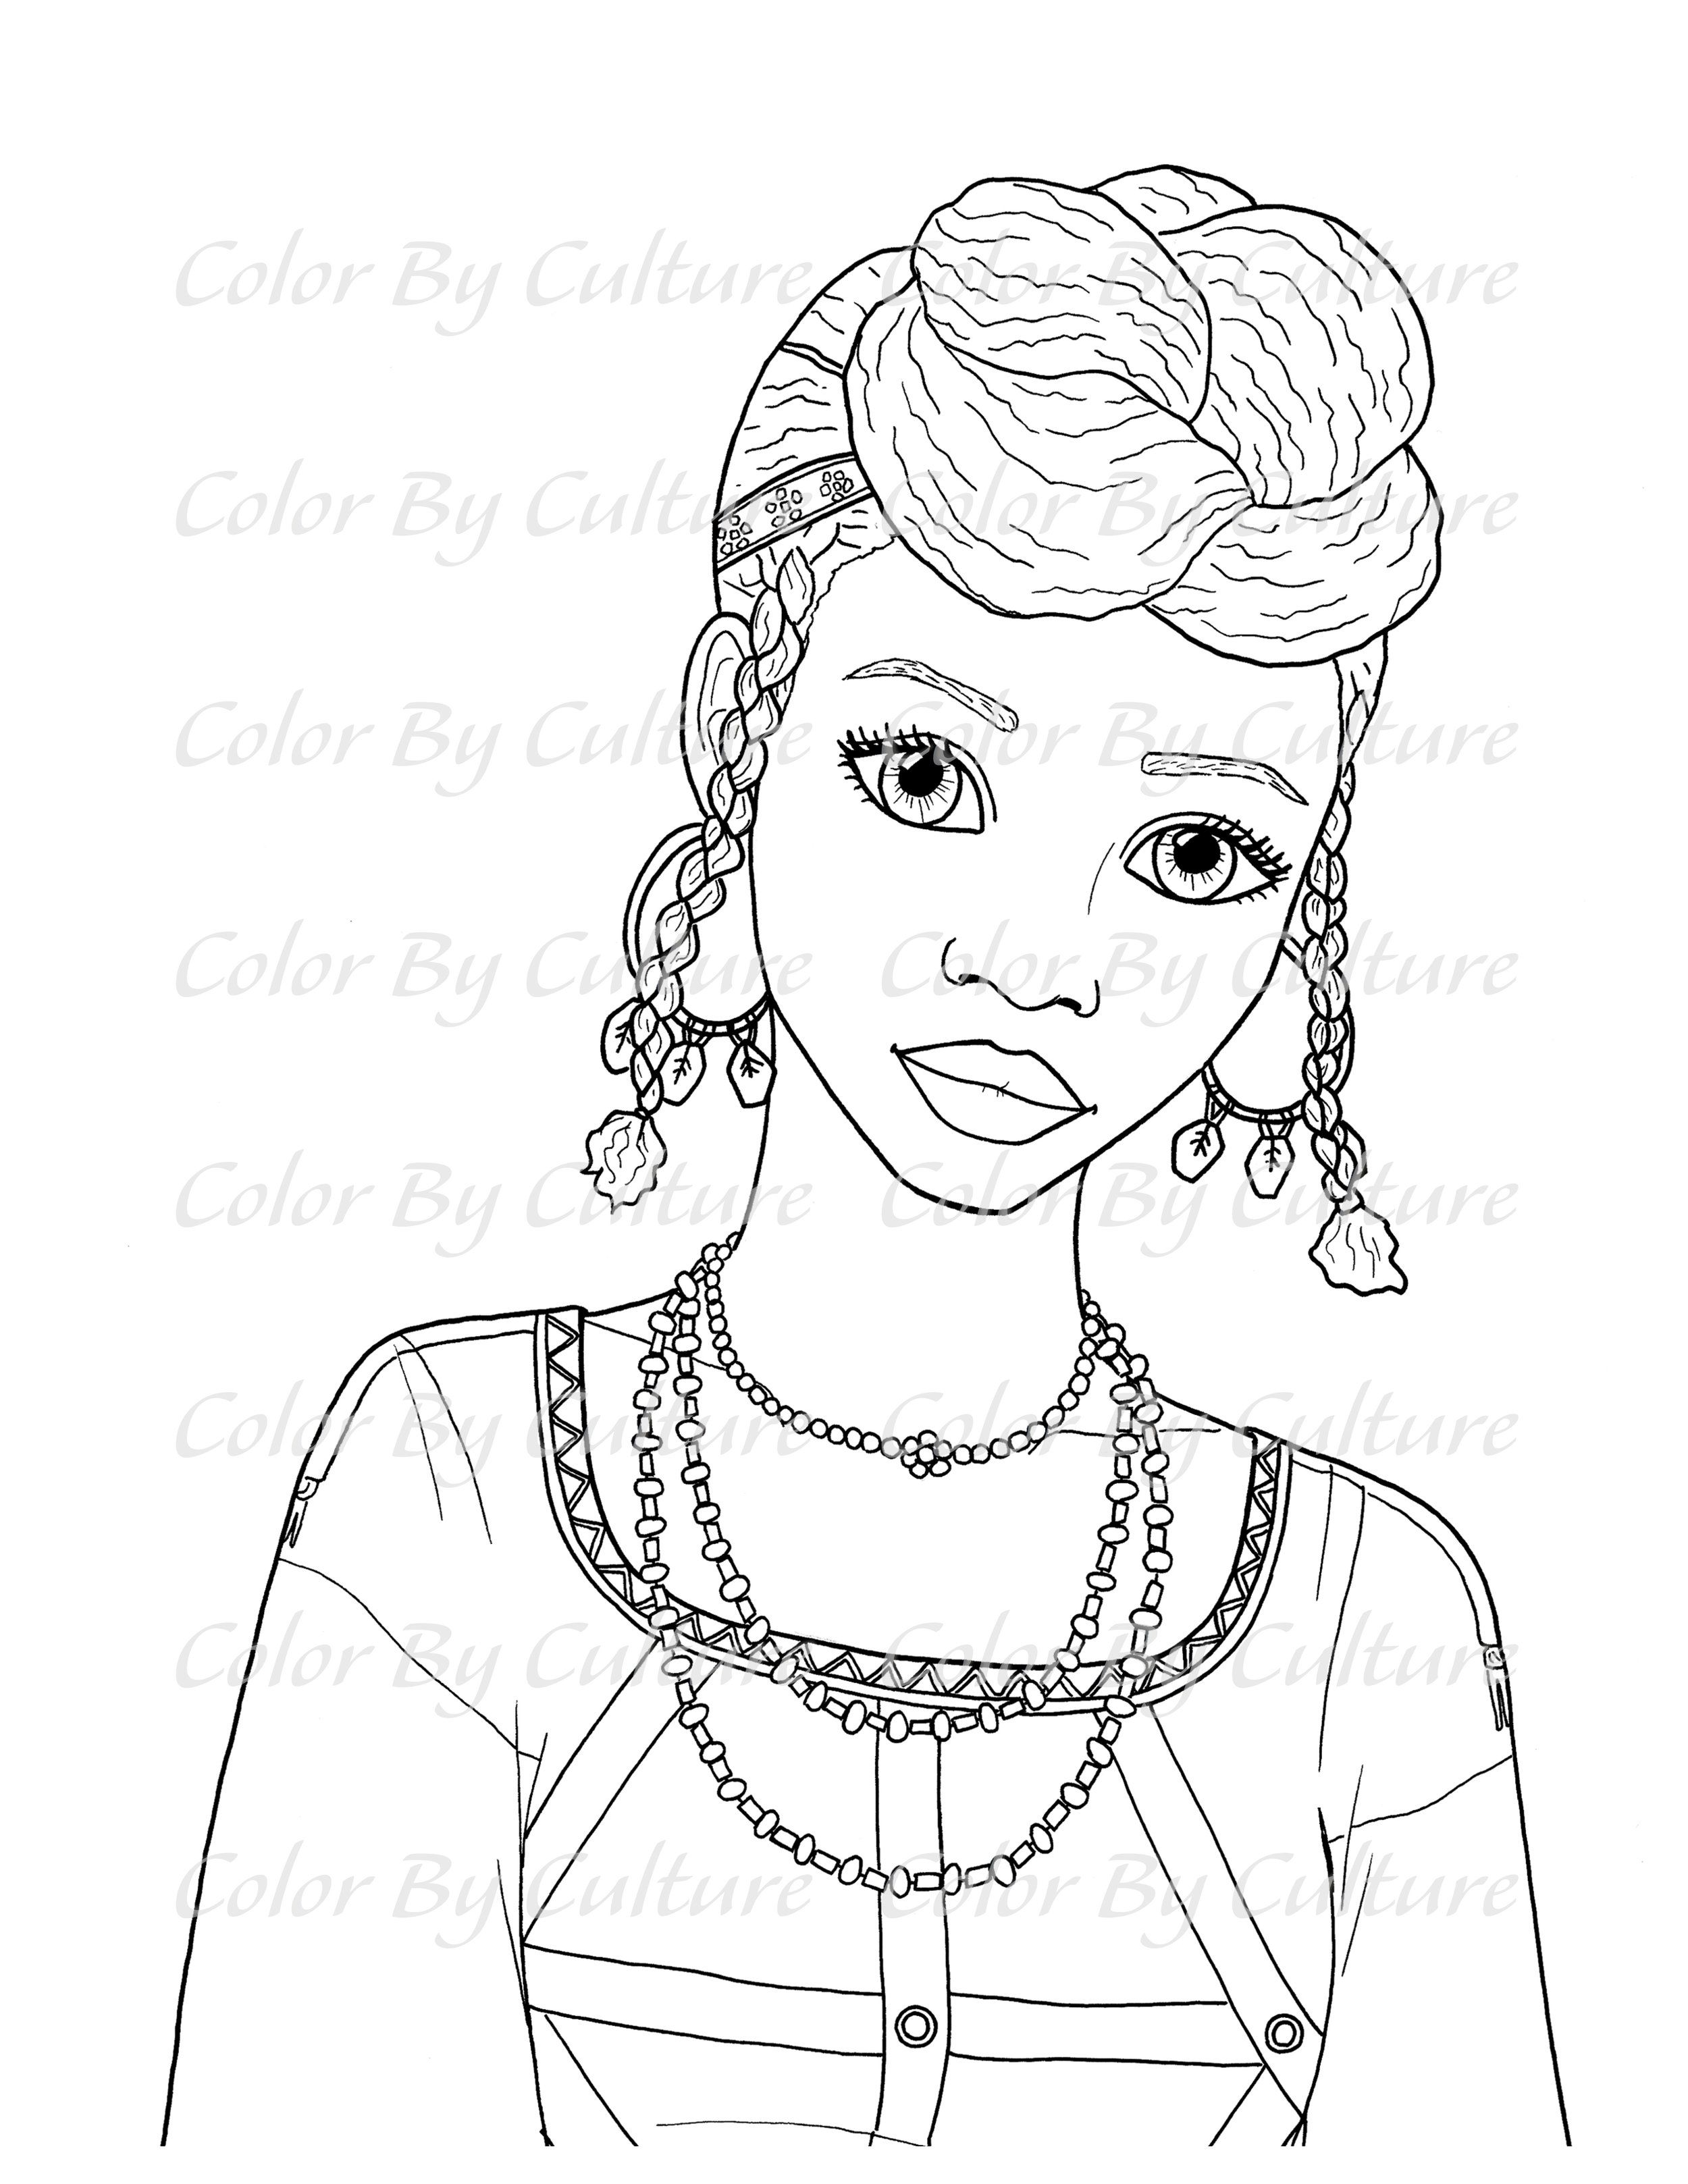 Wodaabe Woman Coloring Page Color By Culture Coloring Pages Coloring Pages Inspirational Coloring Pages For Girls